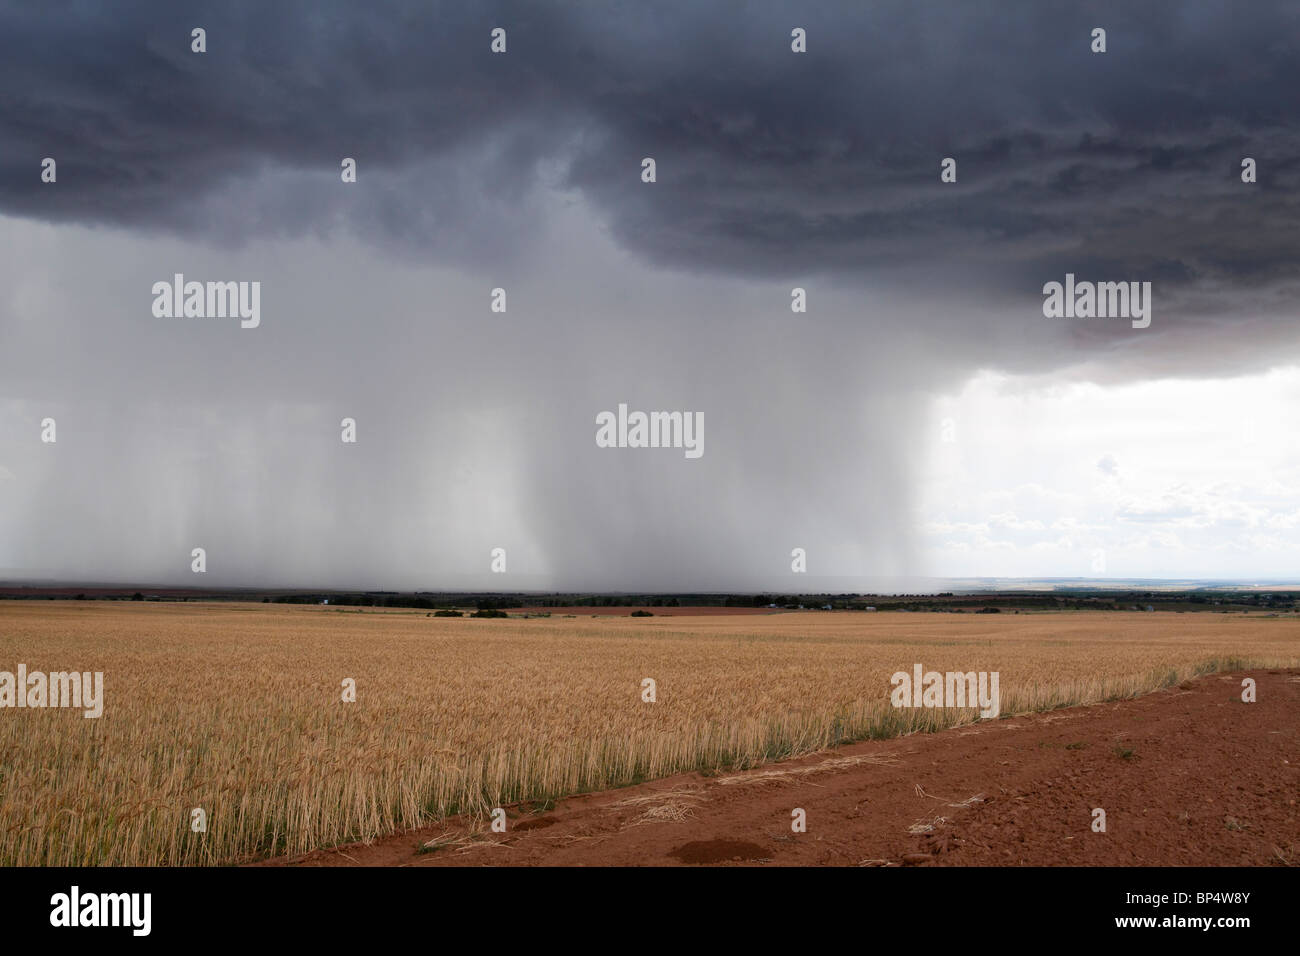 Rain streaking down from dramatic dark looming cumulus cloud formations onto farmland in the distance - Stock Image